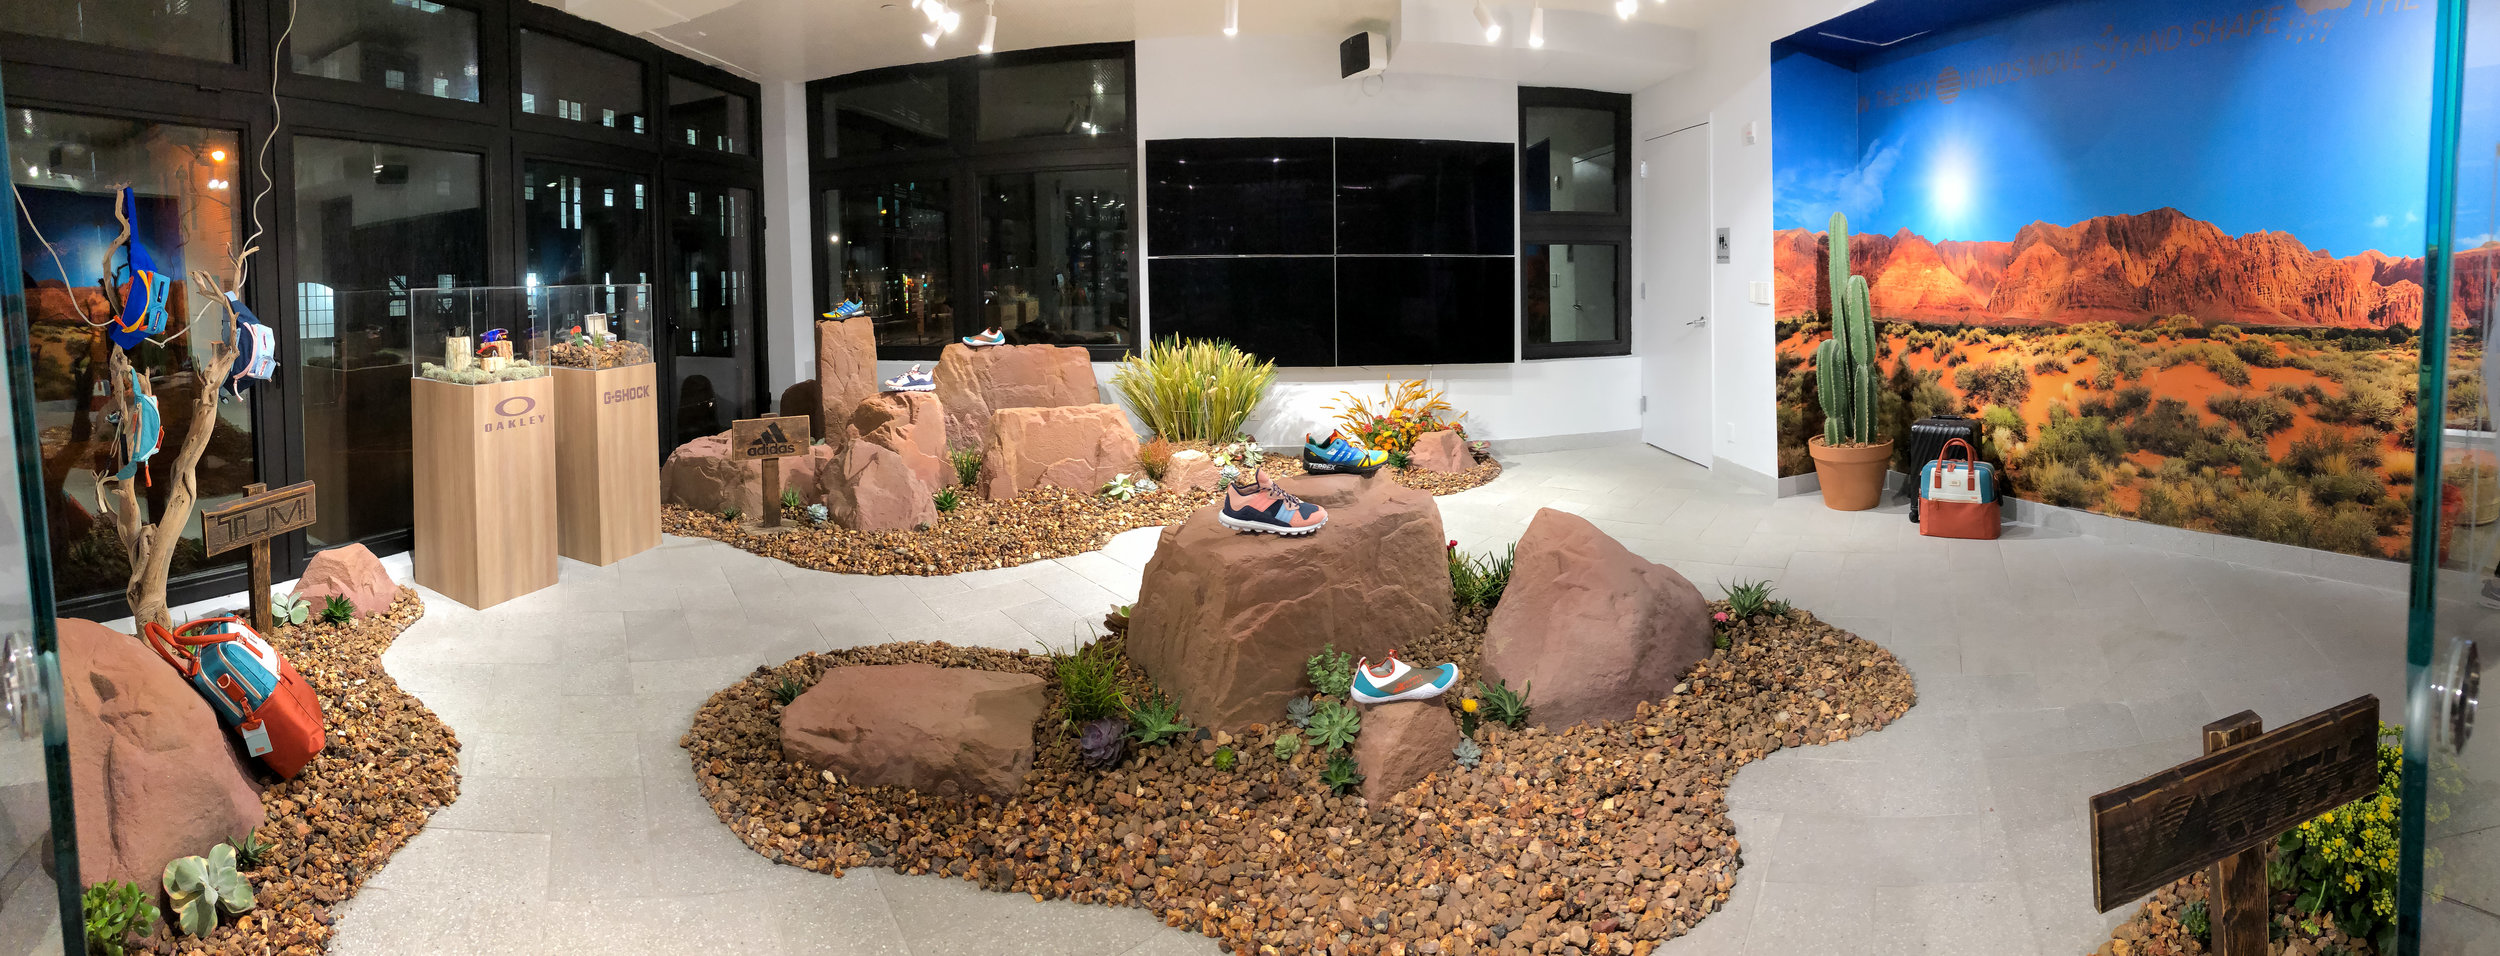 THE UTAH COLLECTION - Rocks,faux boulders, cactus and product are strategically displayed to give the room the Utah Landscape aesthetic.